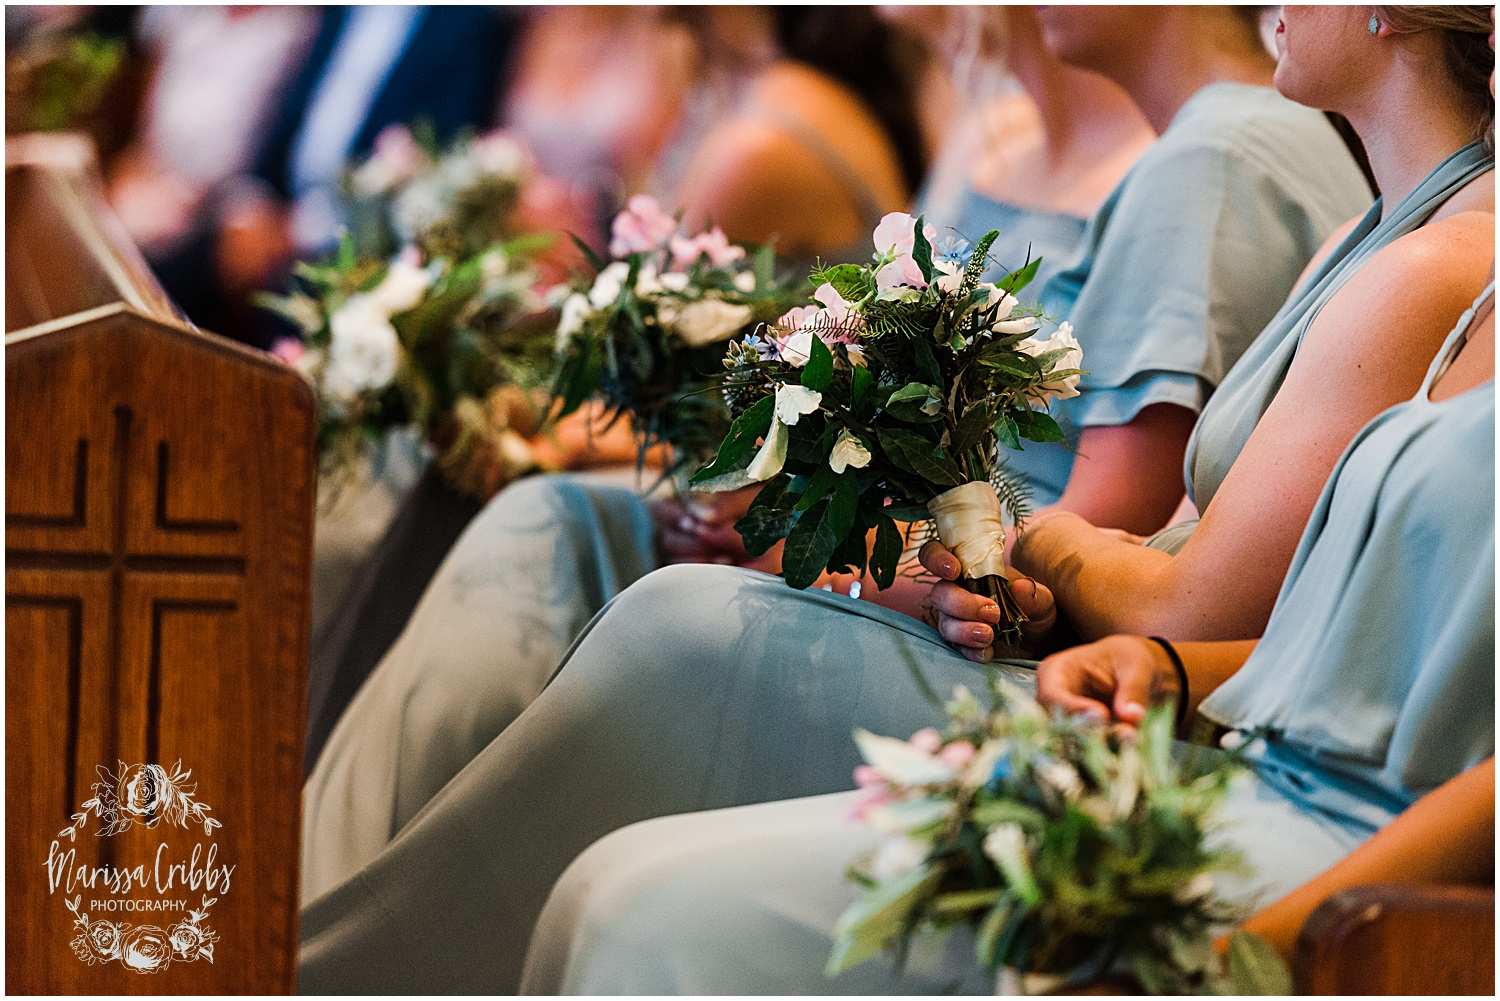 KELLY & MITCH MARRIED BLOG | MARISSA CRIBBS PHOTOGRAPHY | THE EVERLY EVENT SPACE_8836.jpg